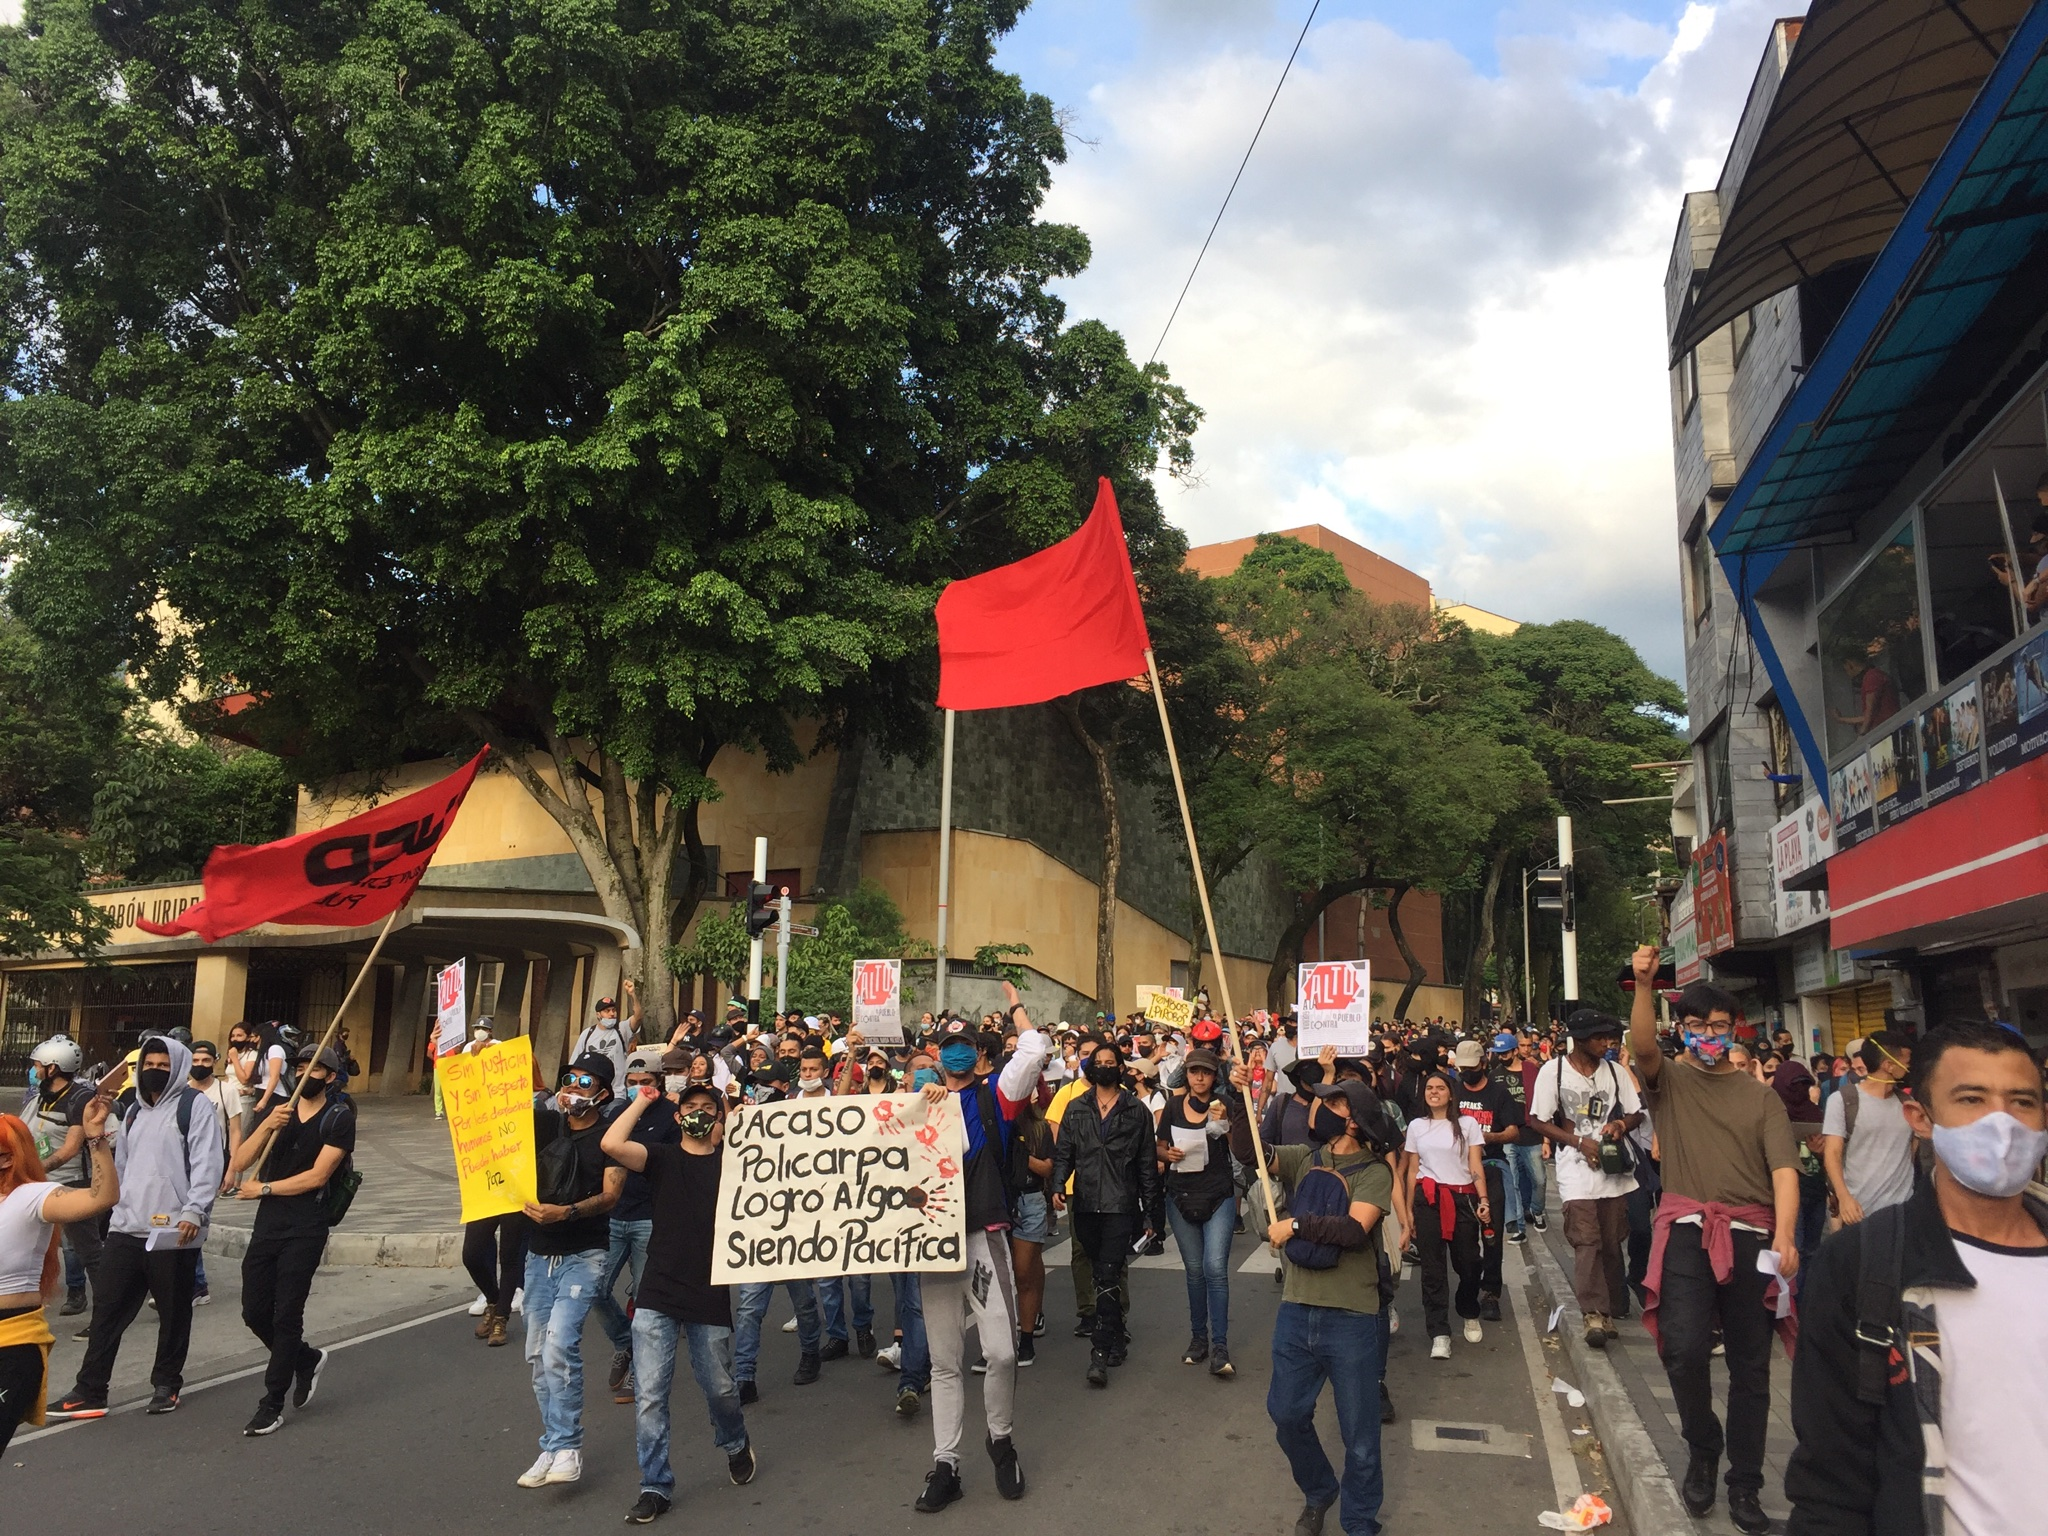 Demonstration Starts at Protesters' Funeral & Protests Against Sexual Violence Erupt (9/13/2020)